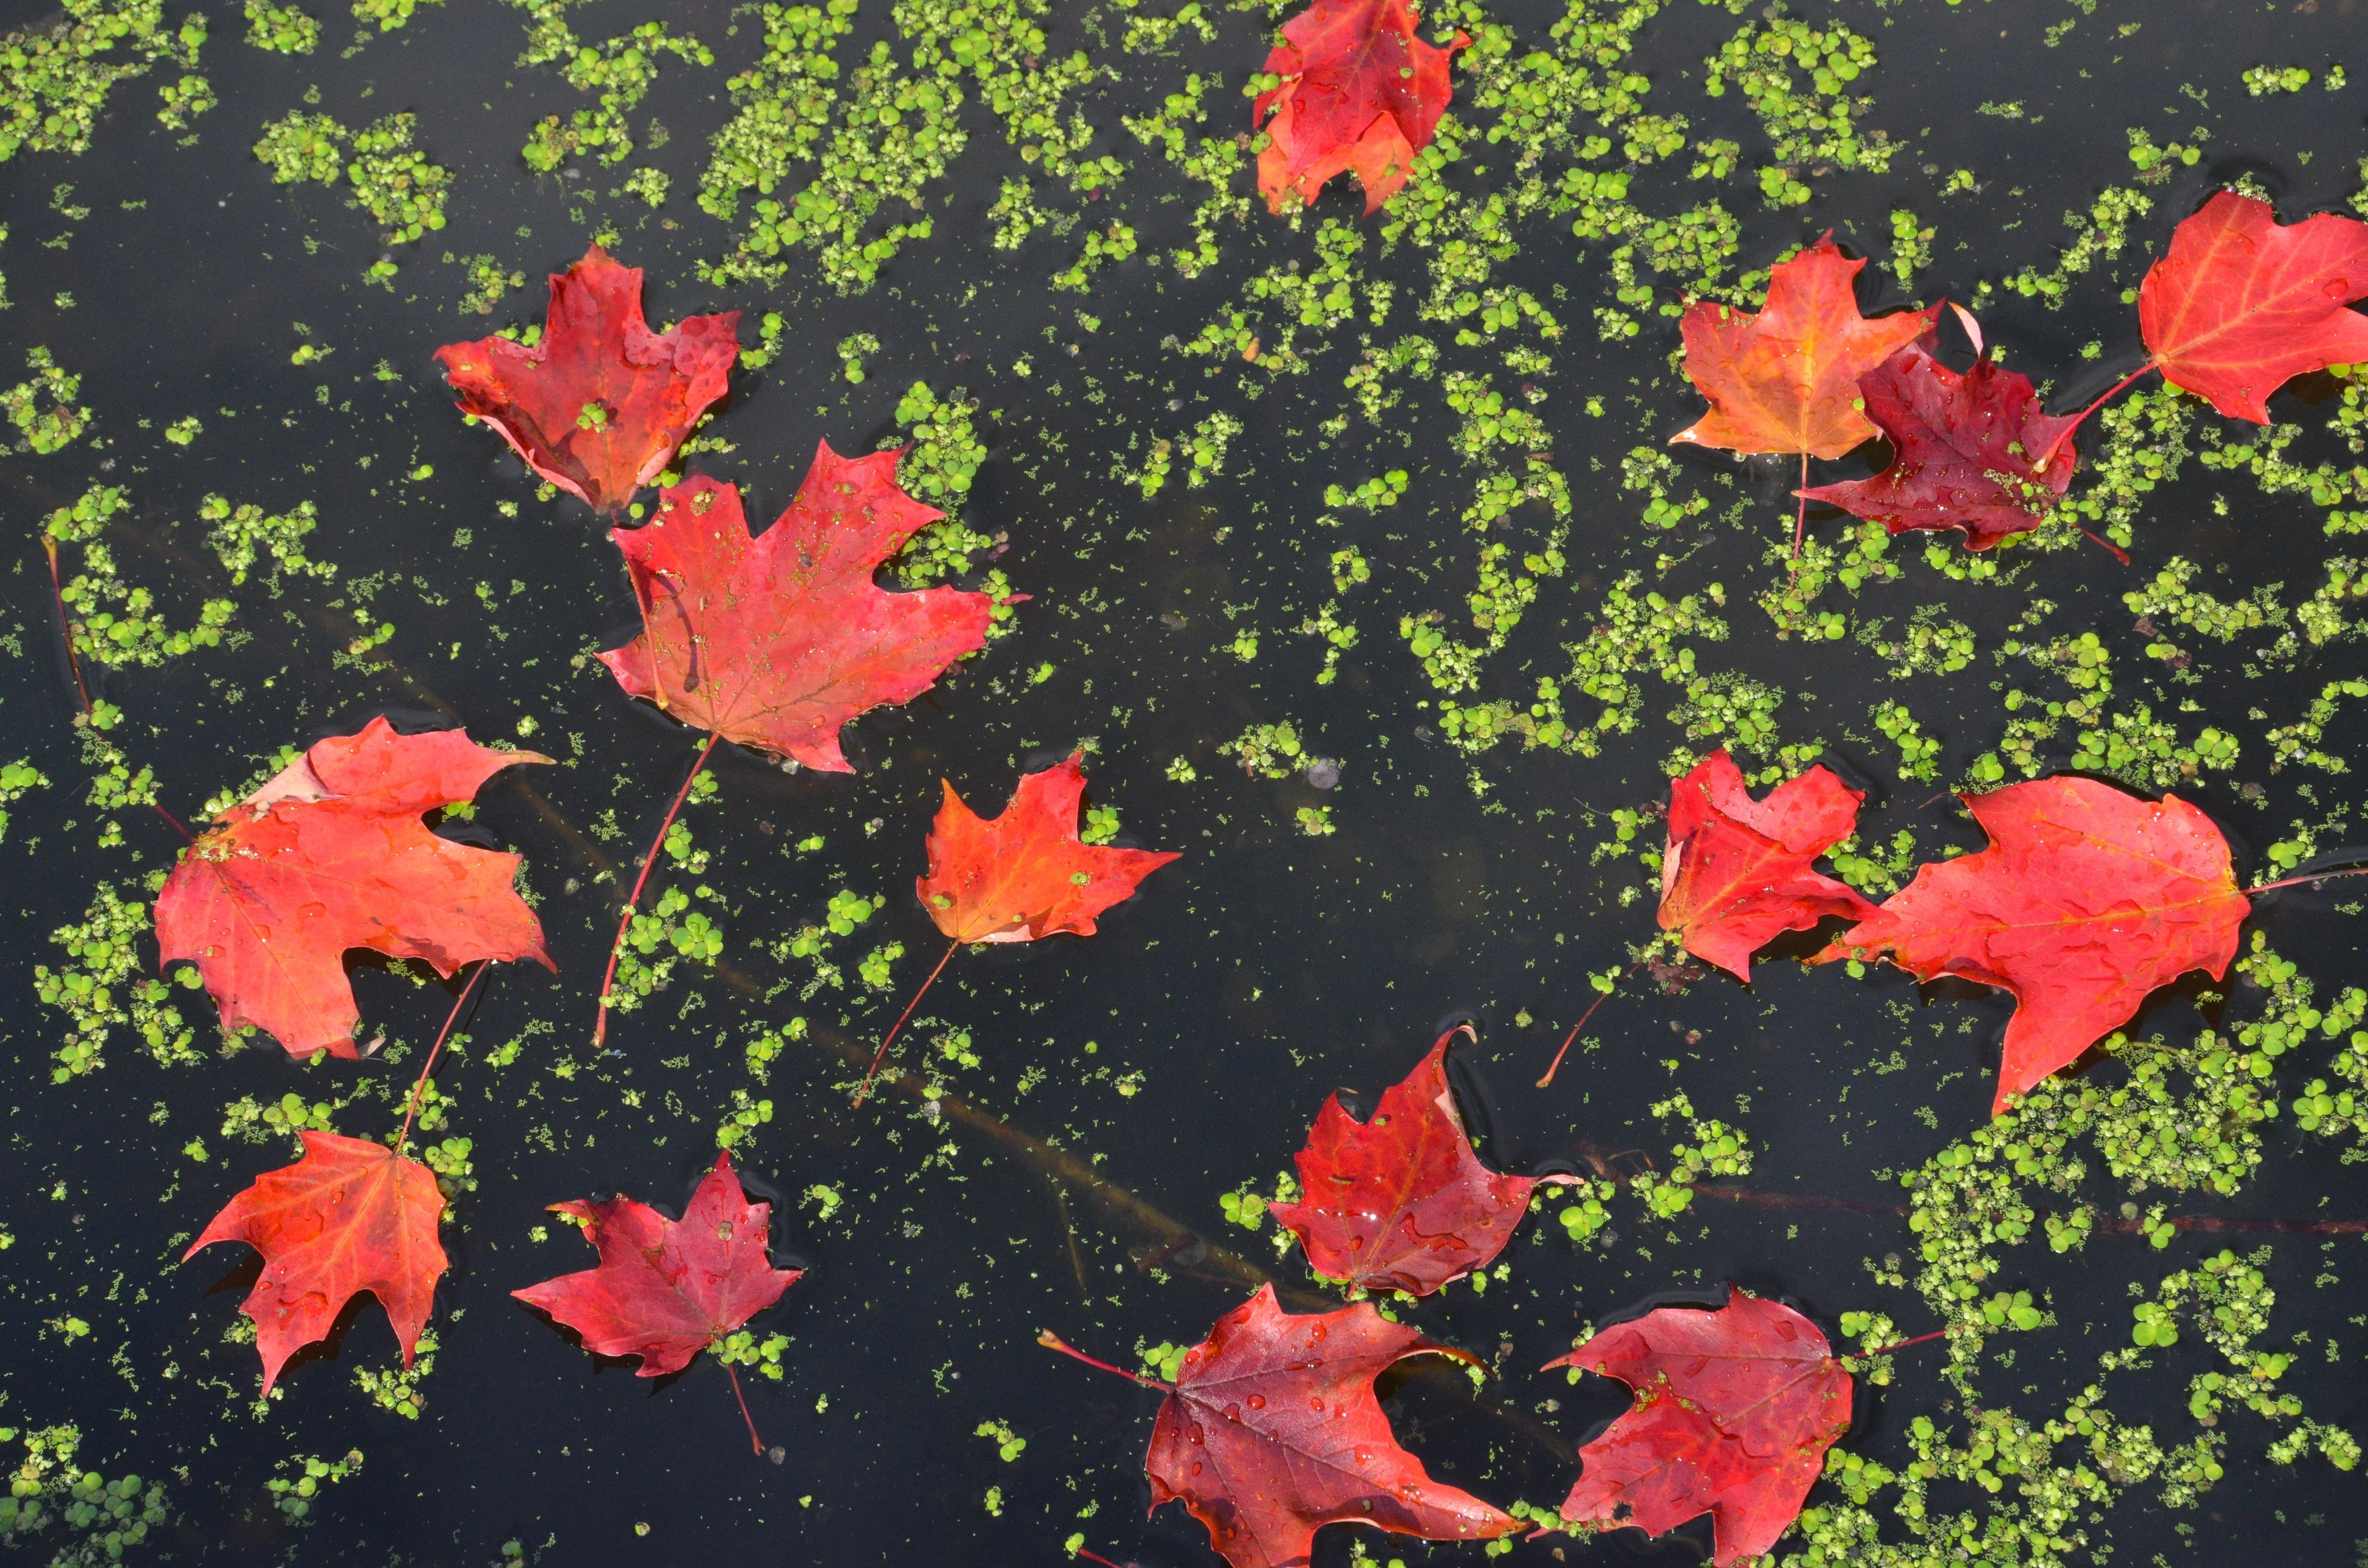 Fall colors: autumn foliage across North America – in pictures #autumnfoliage